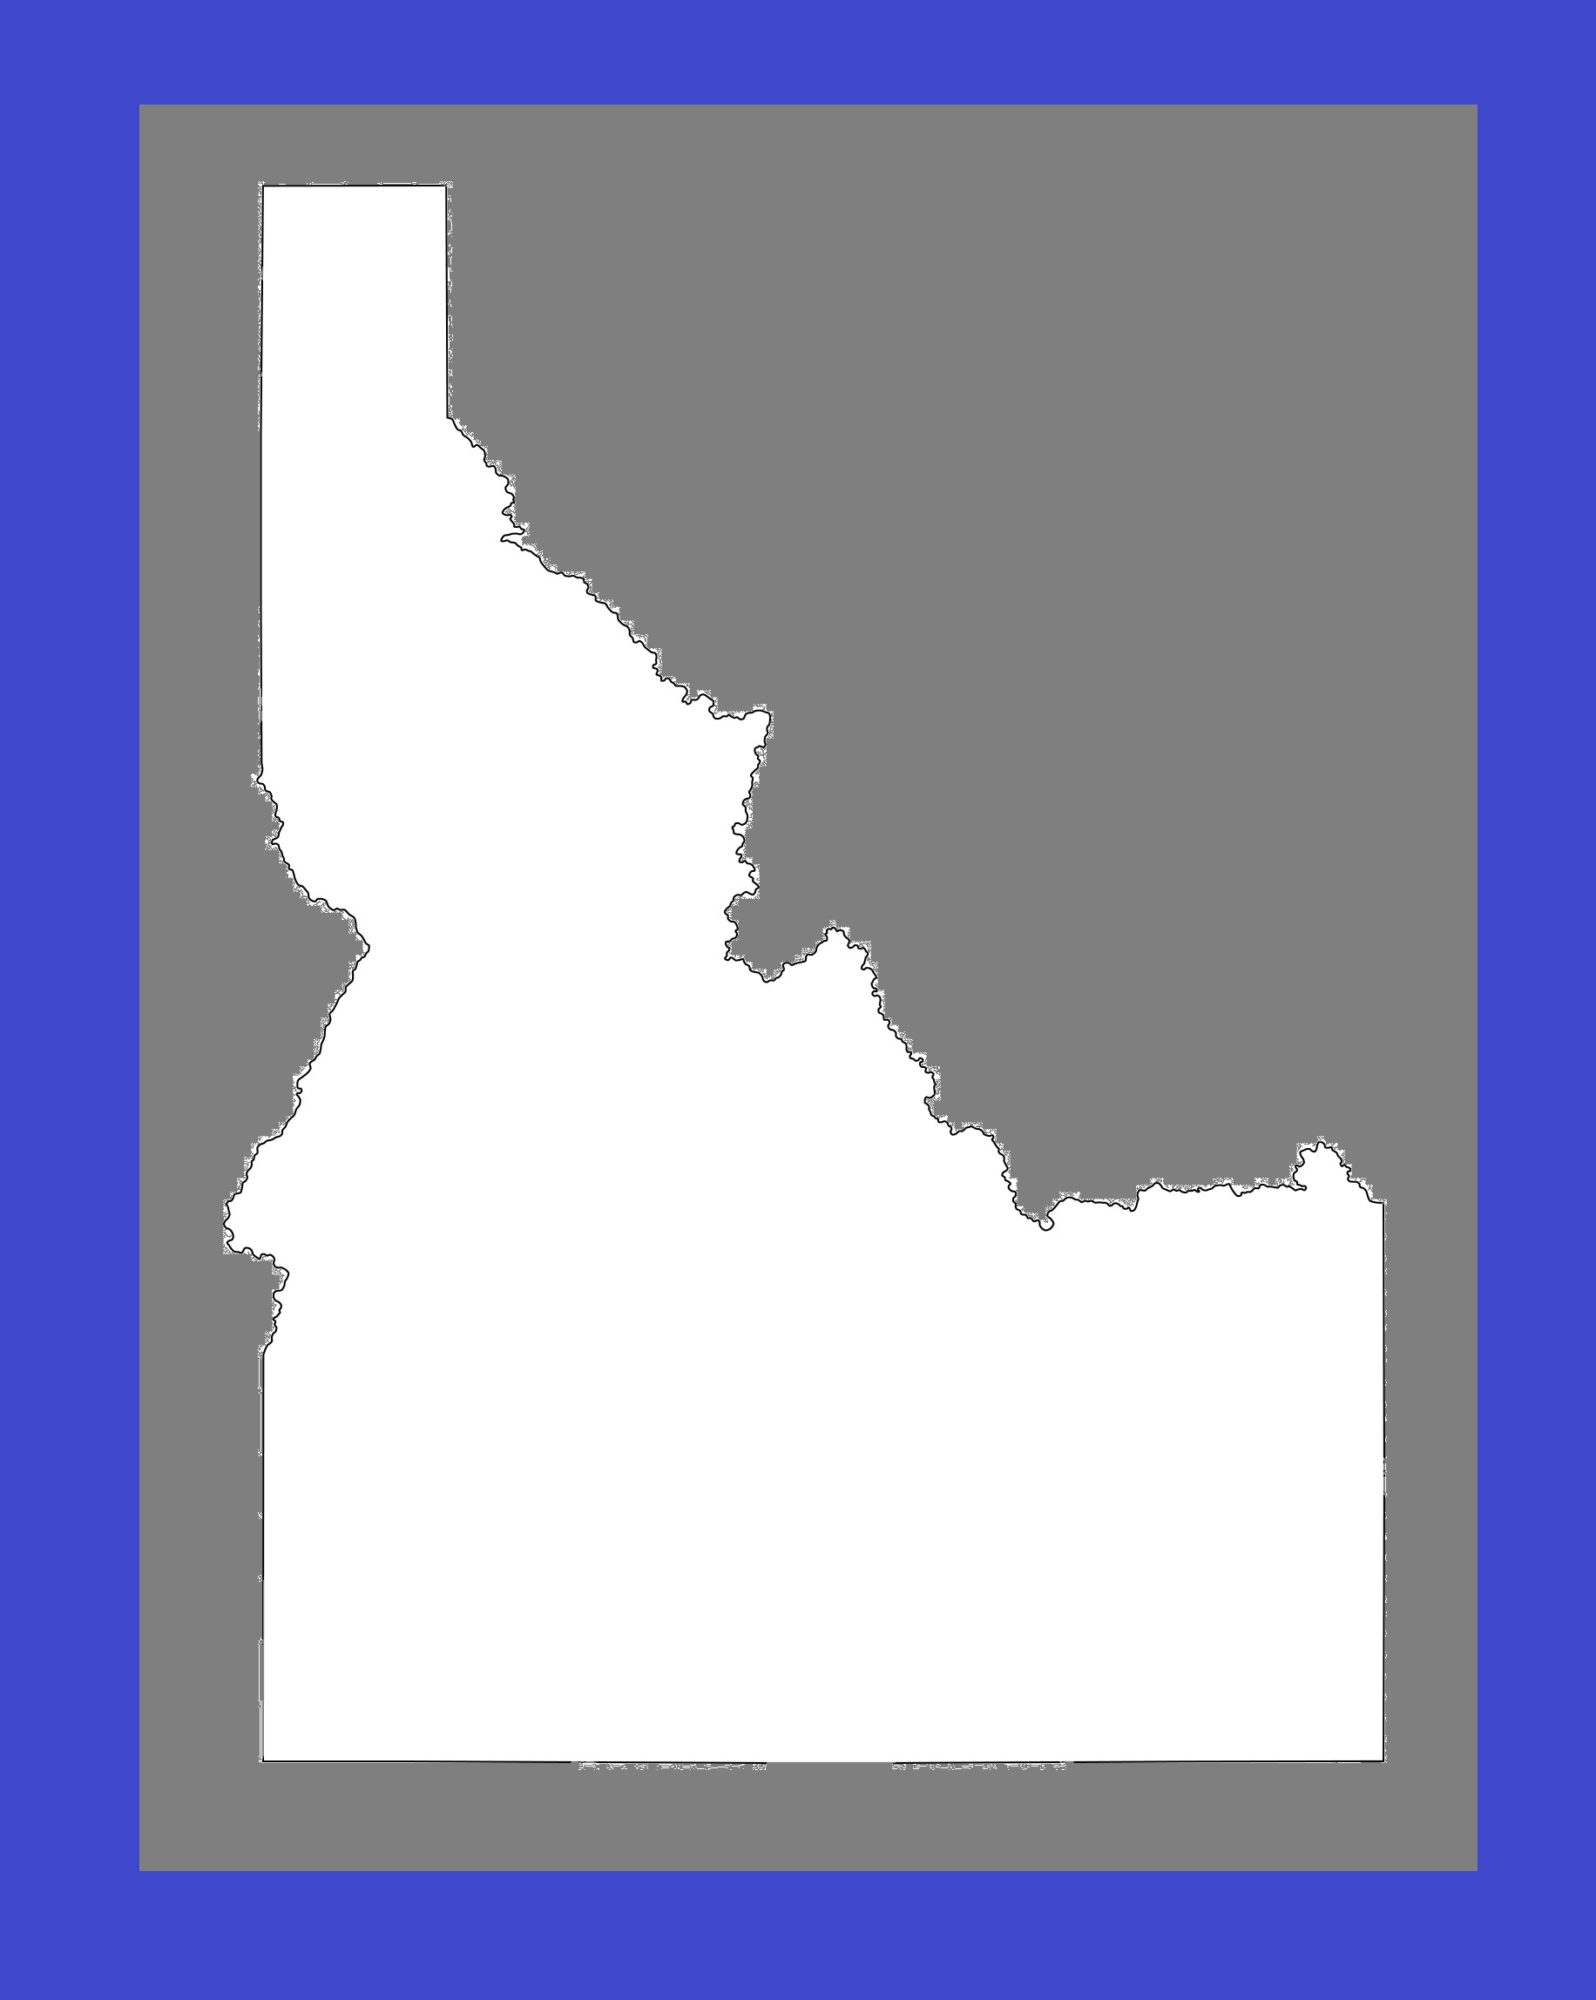 Idaho Blank Outline Map | Large Printable and Standard Map 5